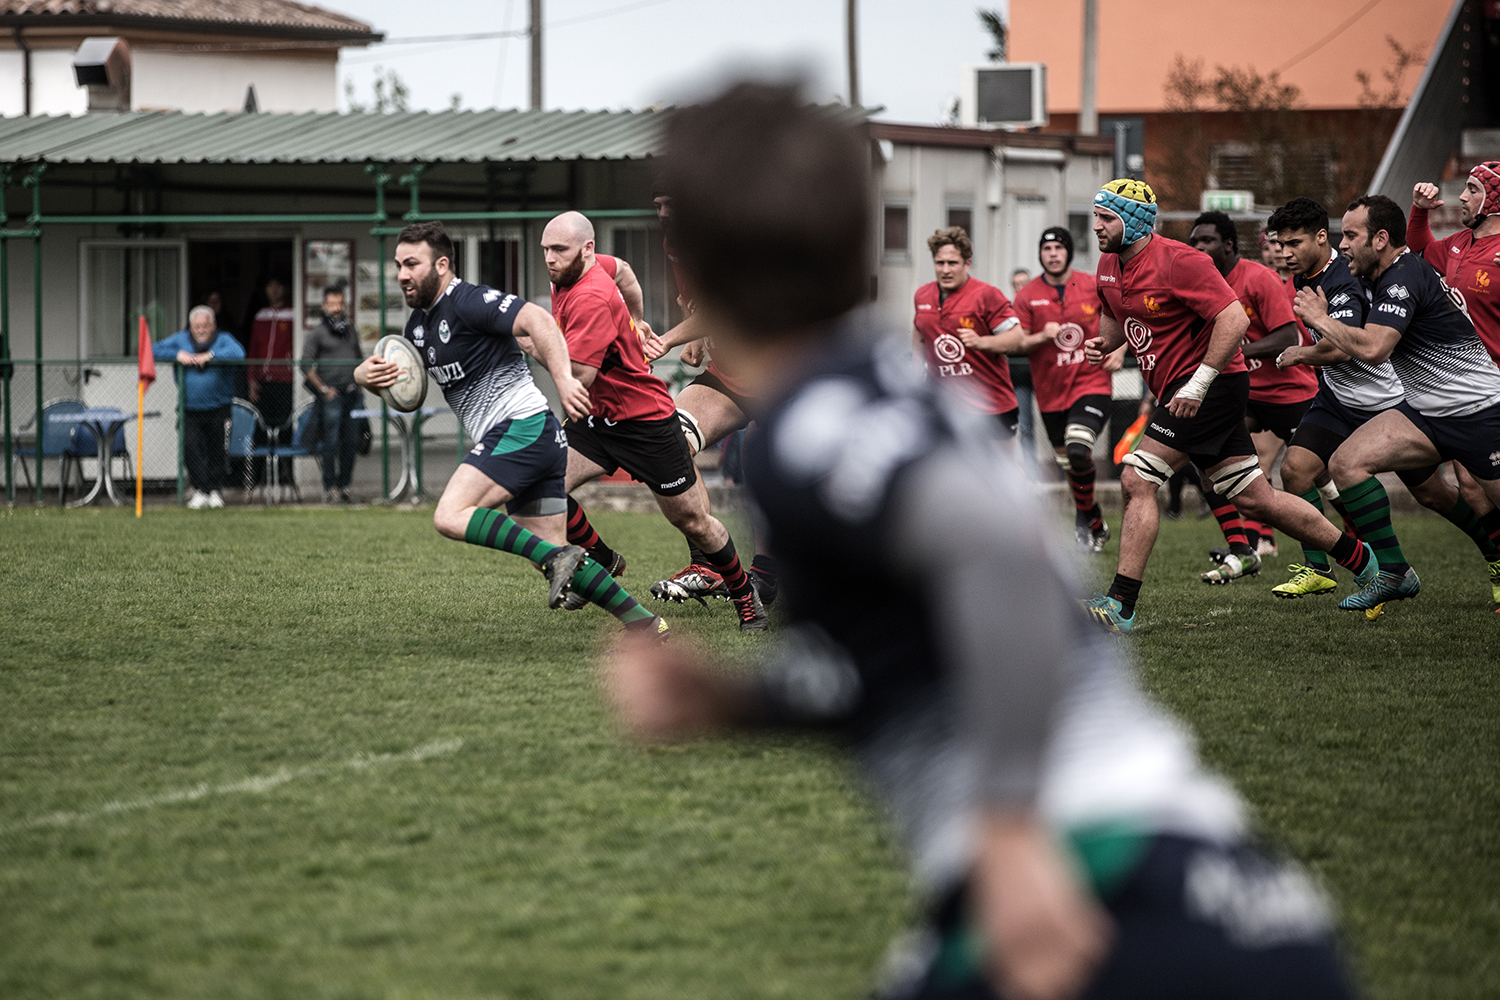 rugby_photograph_10.jpg